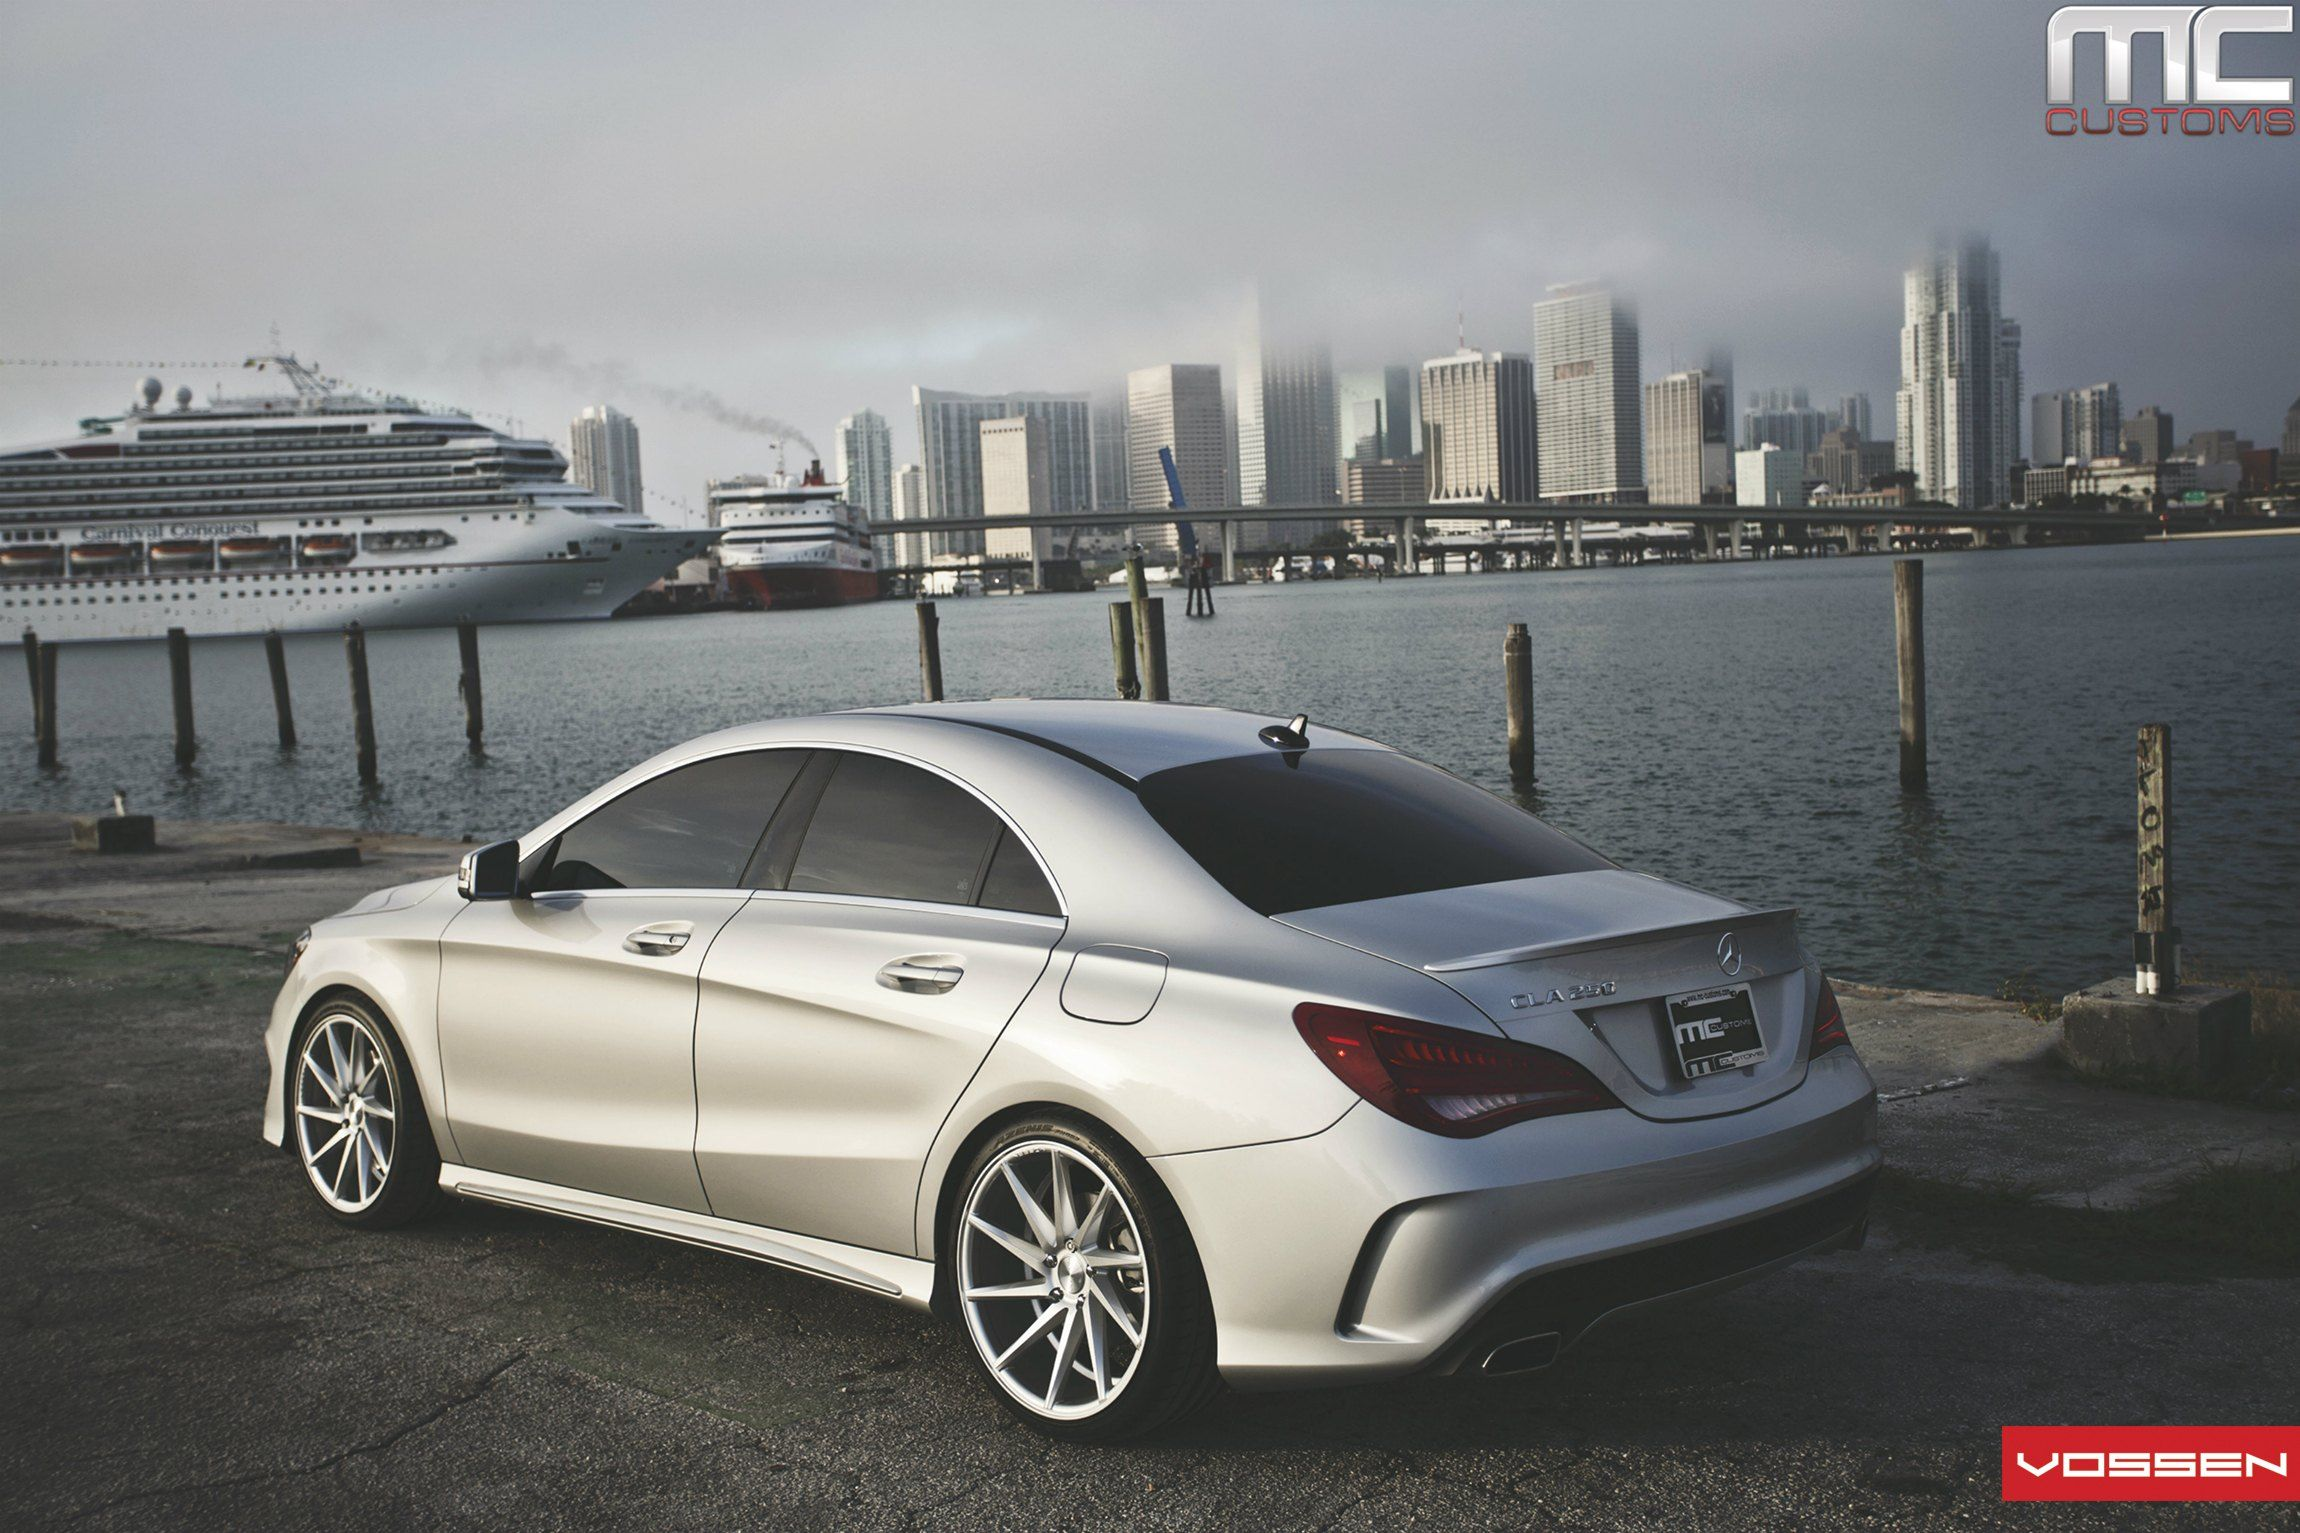 Mercedes Cla250 Gets Aftermarket Wheels By Vossen Velg